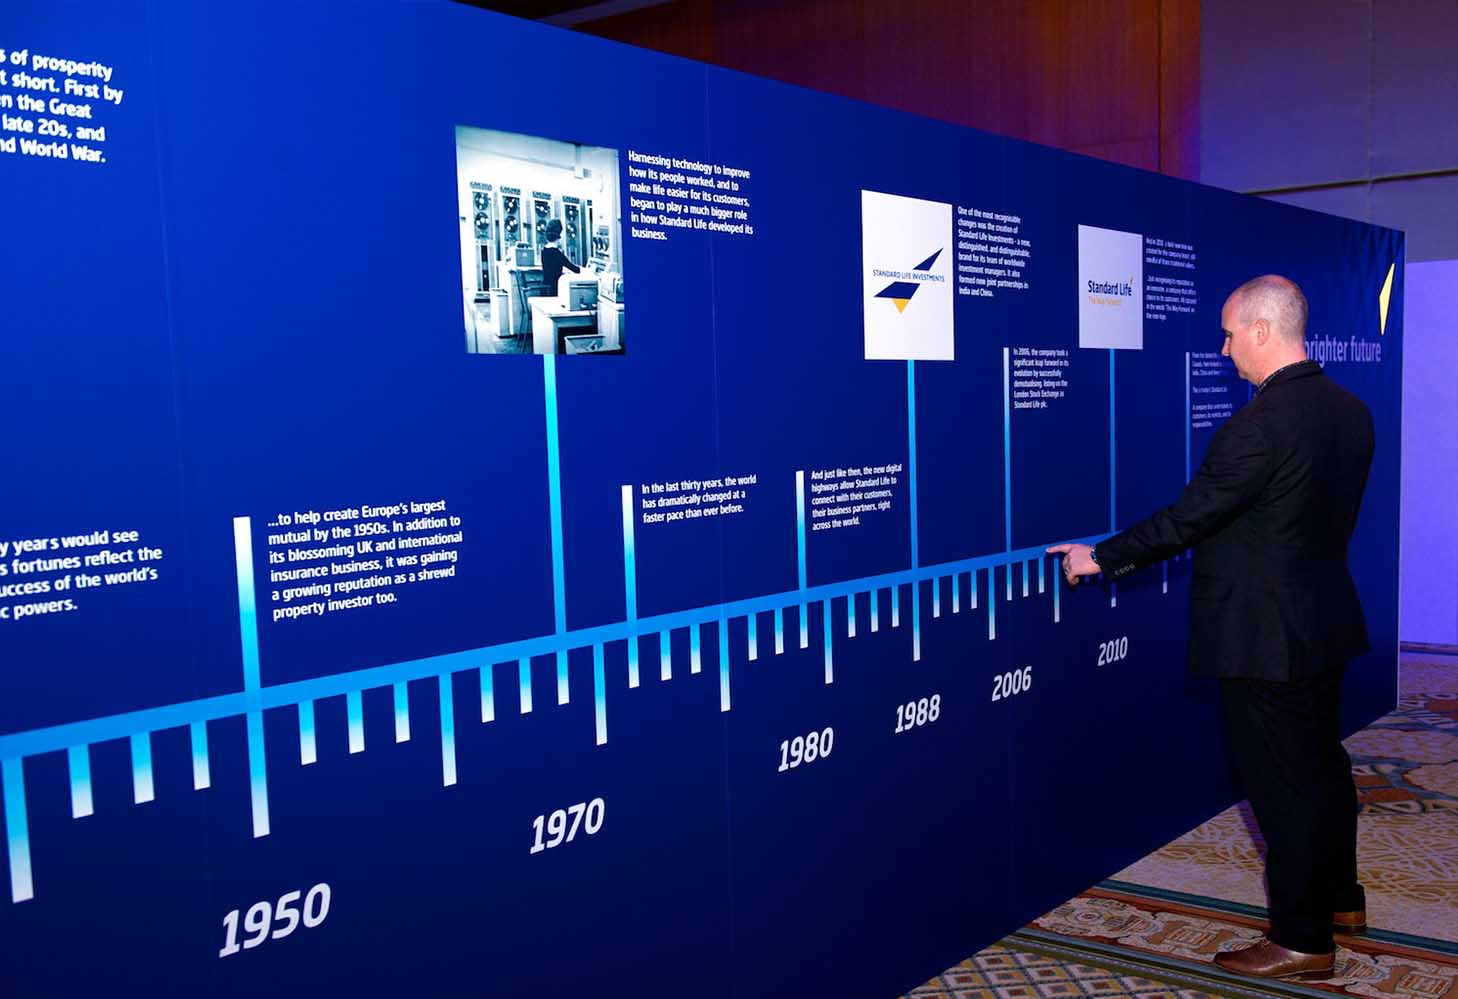 Image of narrative timeline wall at brand launch event ritz carlton dubai